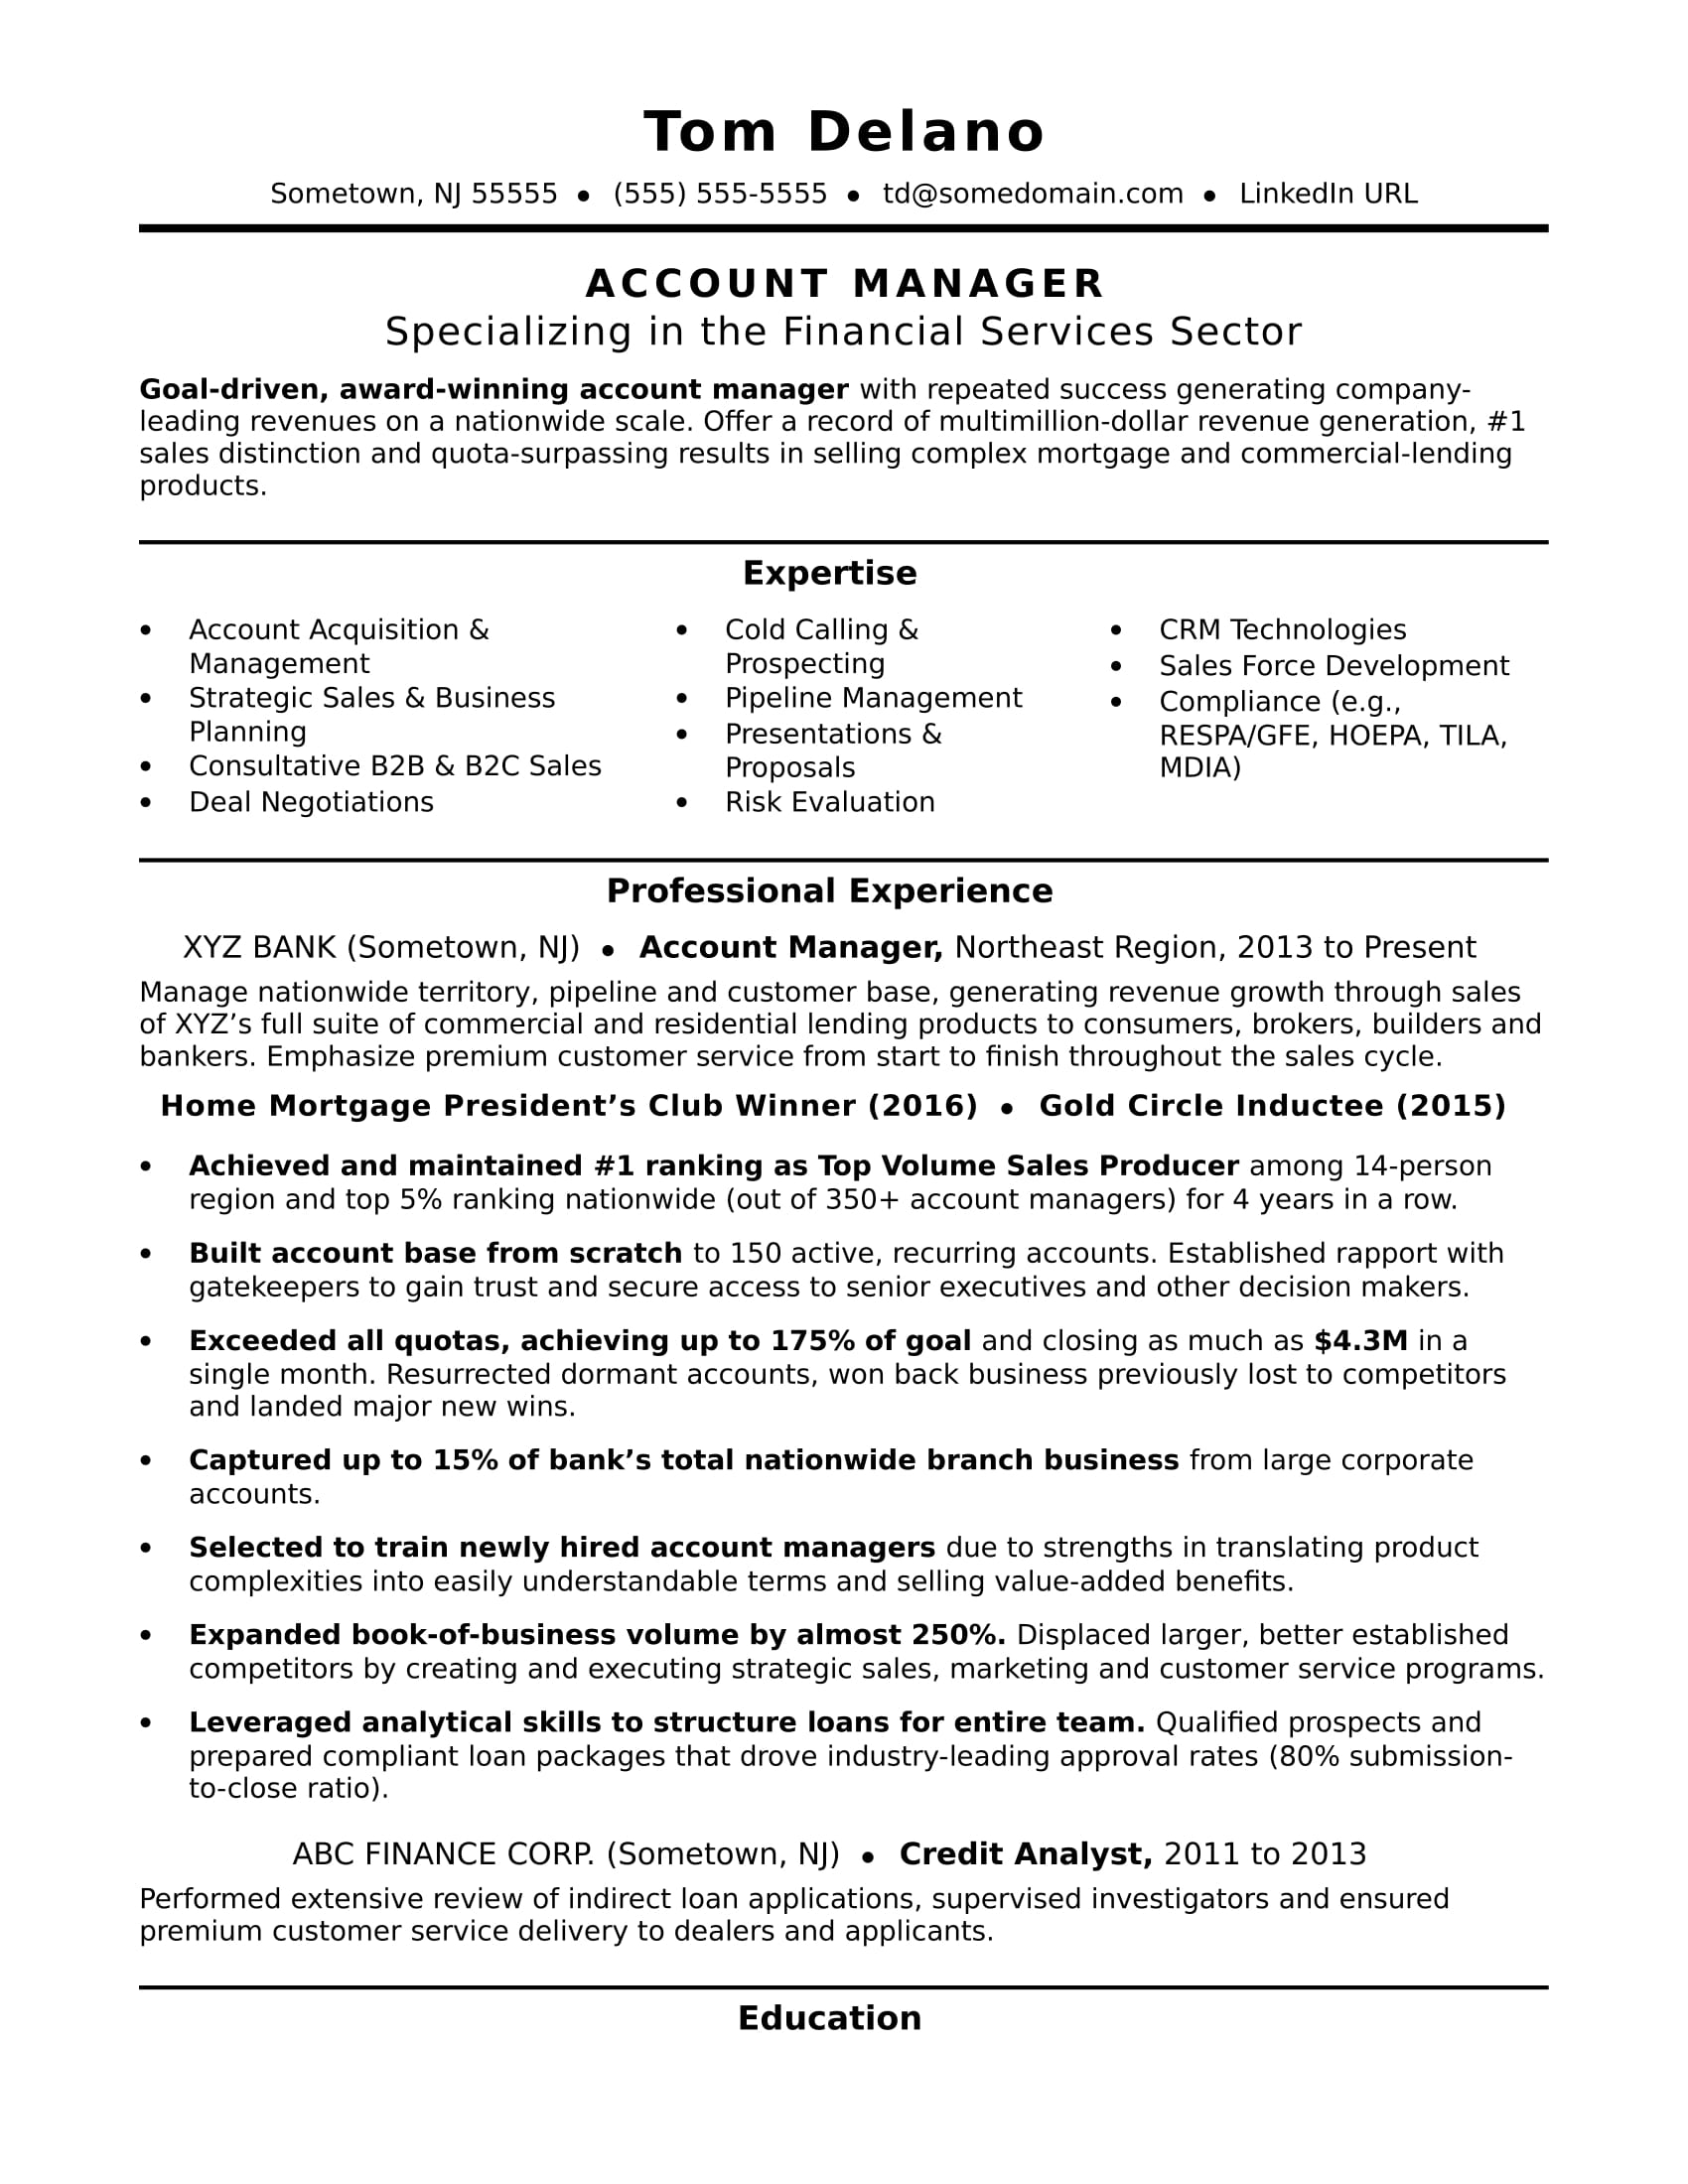 Account Manager Resume Sample | Monster.com